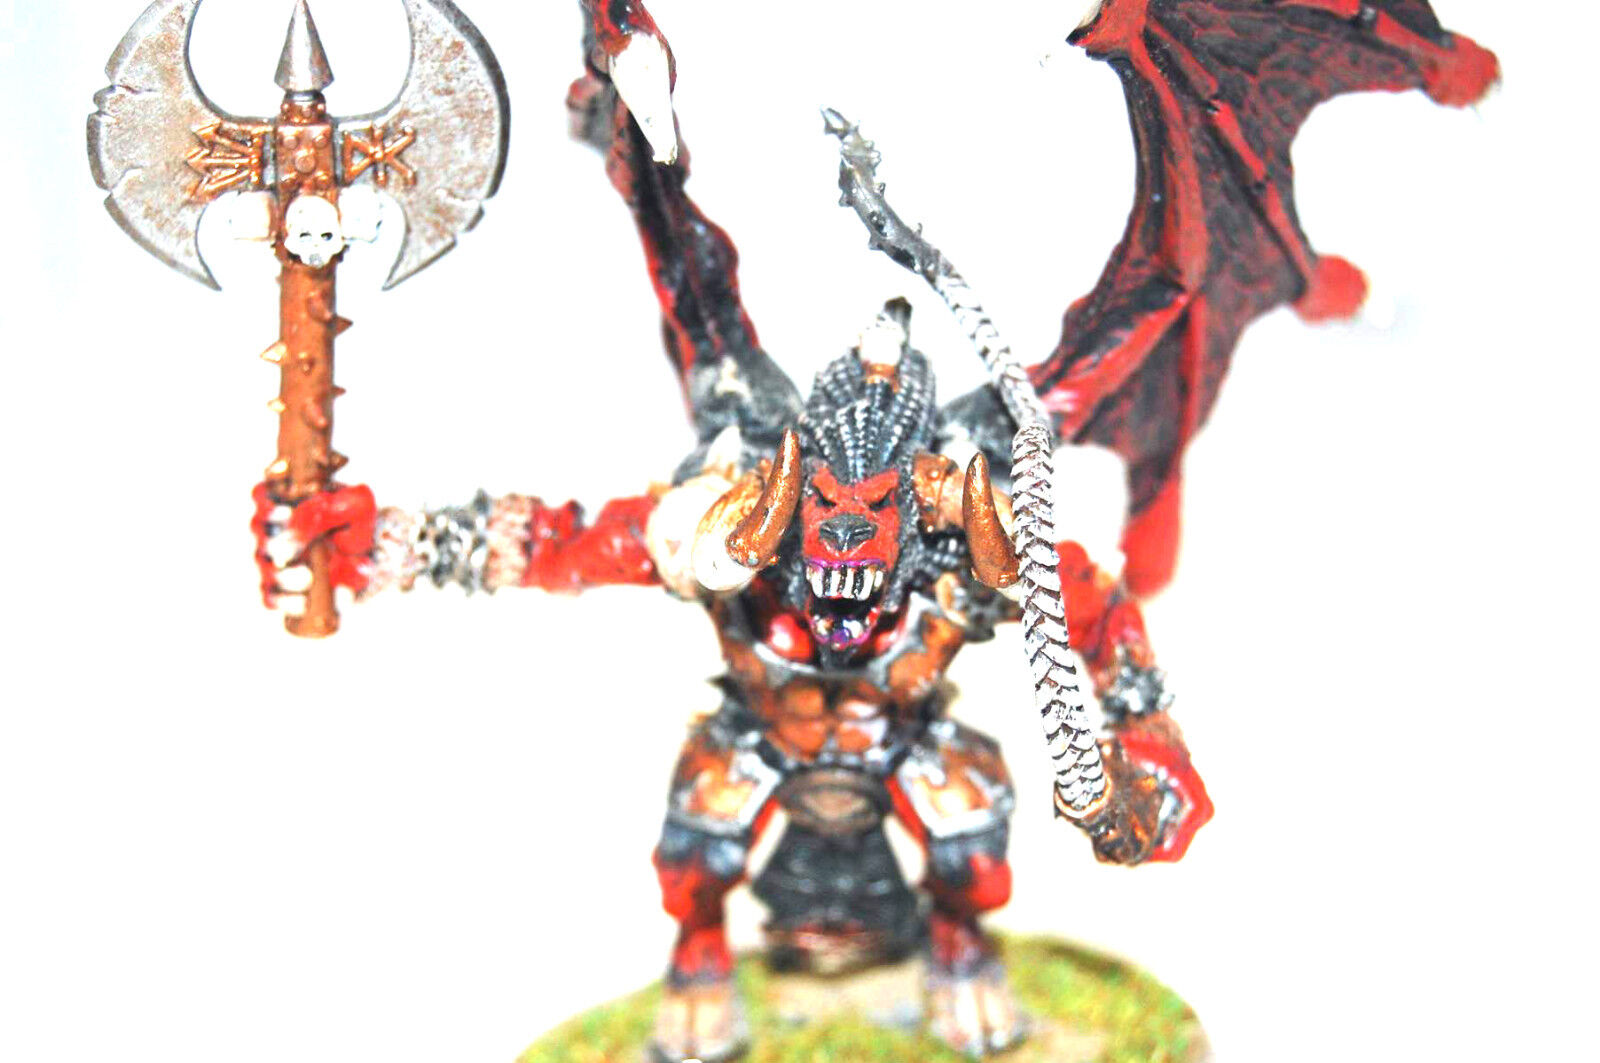 Warhammer 40k AoS Daemons of Chaos army well painted Greater Daemon of Khorne